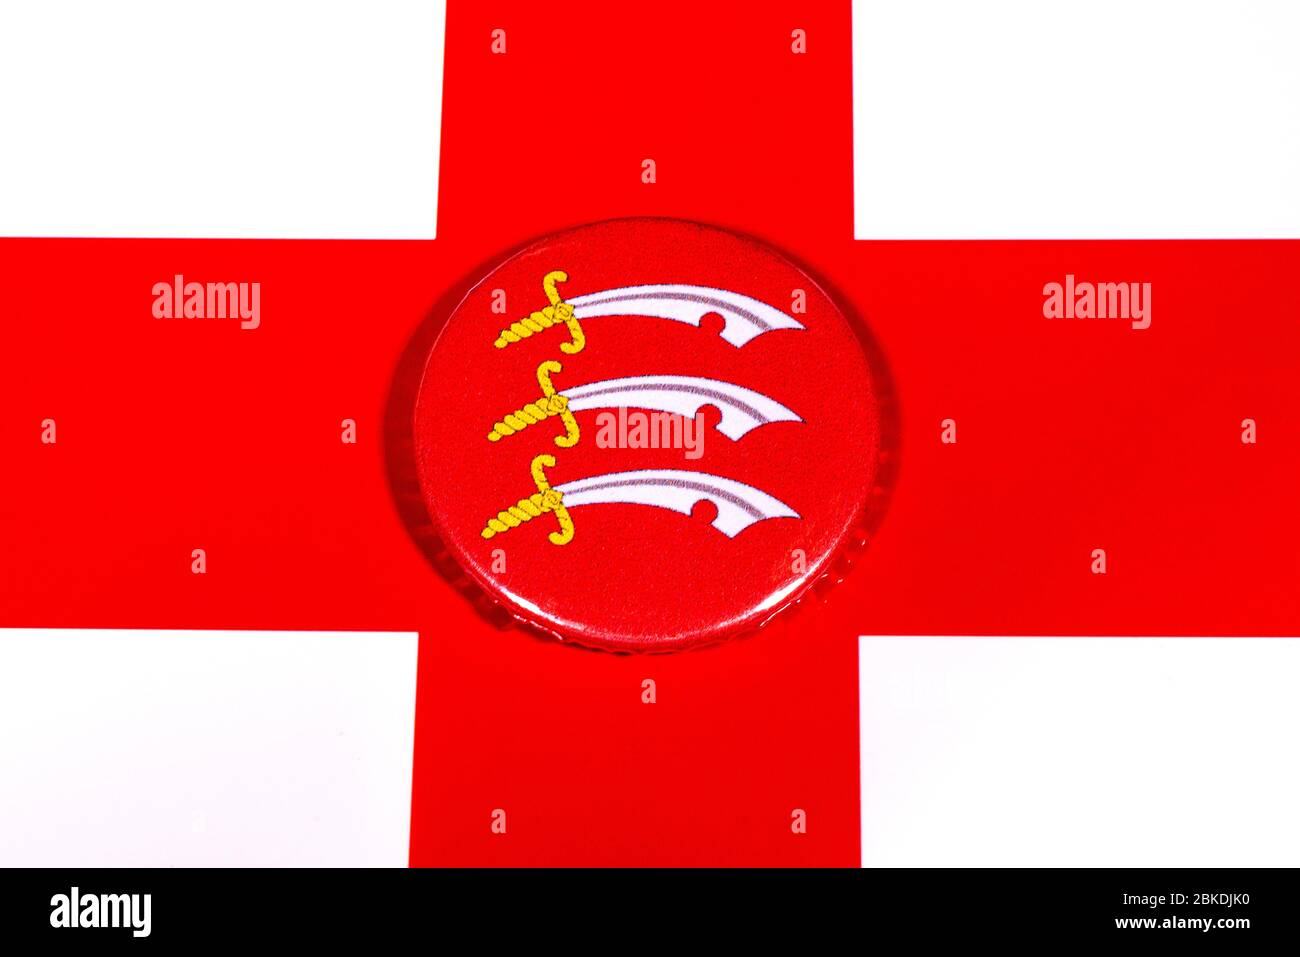 A badge portraying the flag of the English county of Essex pictured over the England flag. Stock Photo